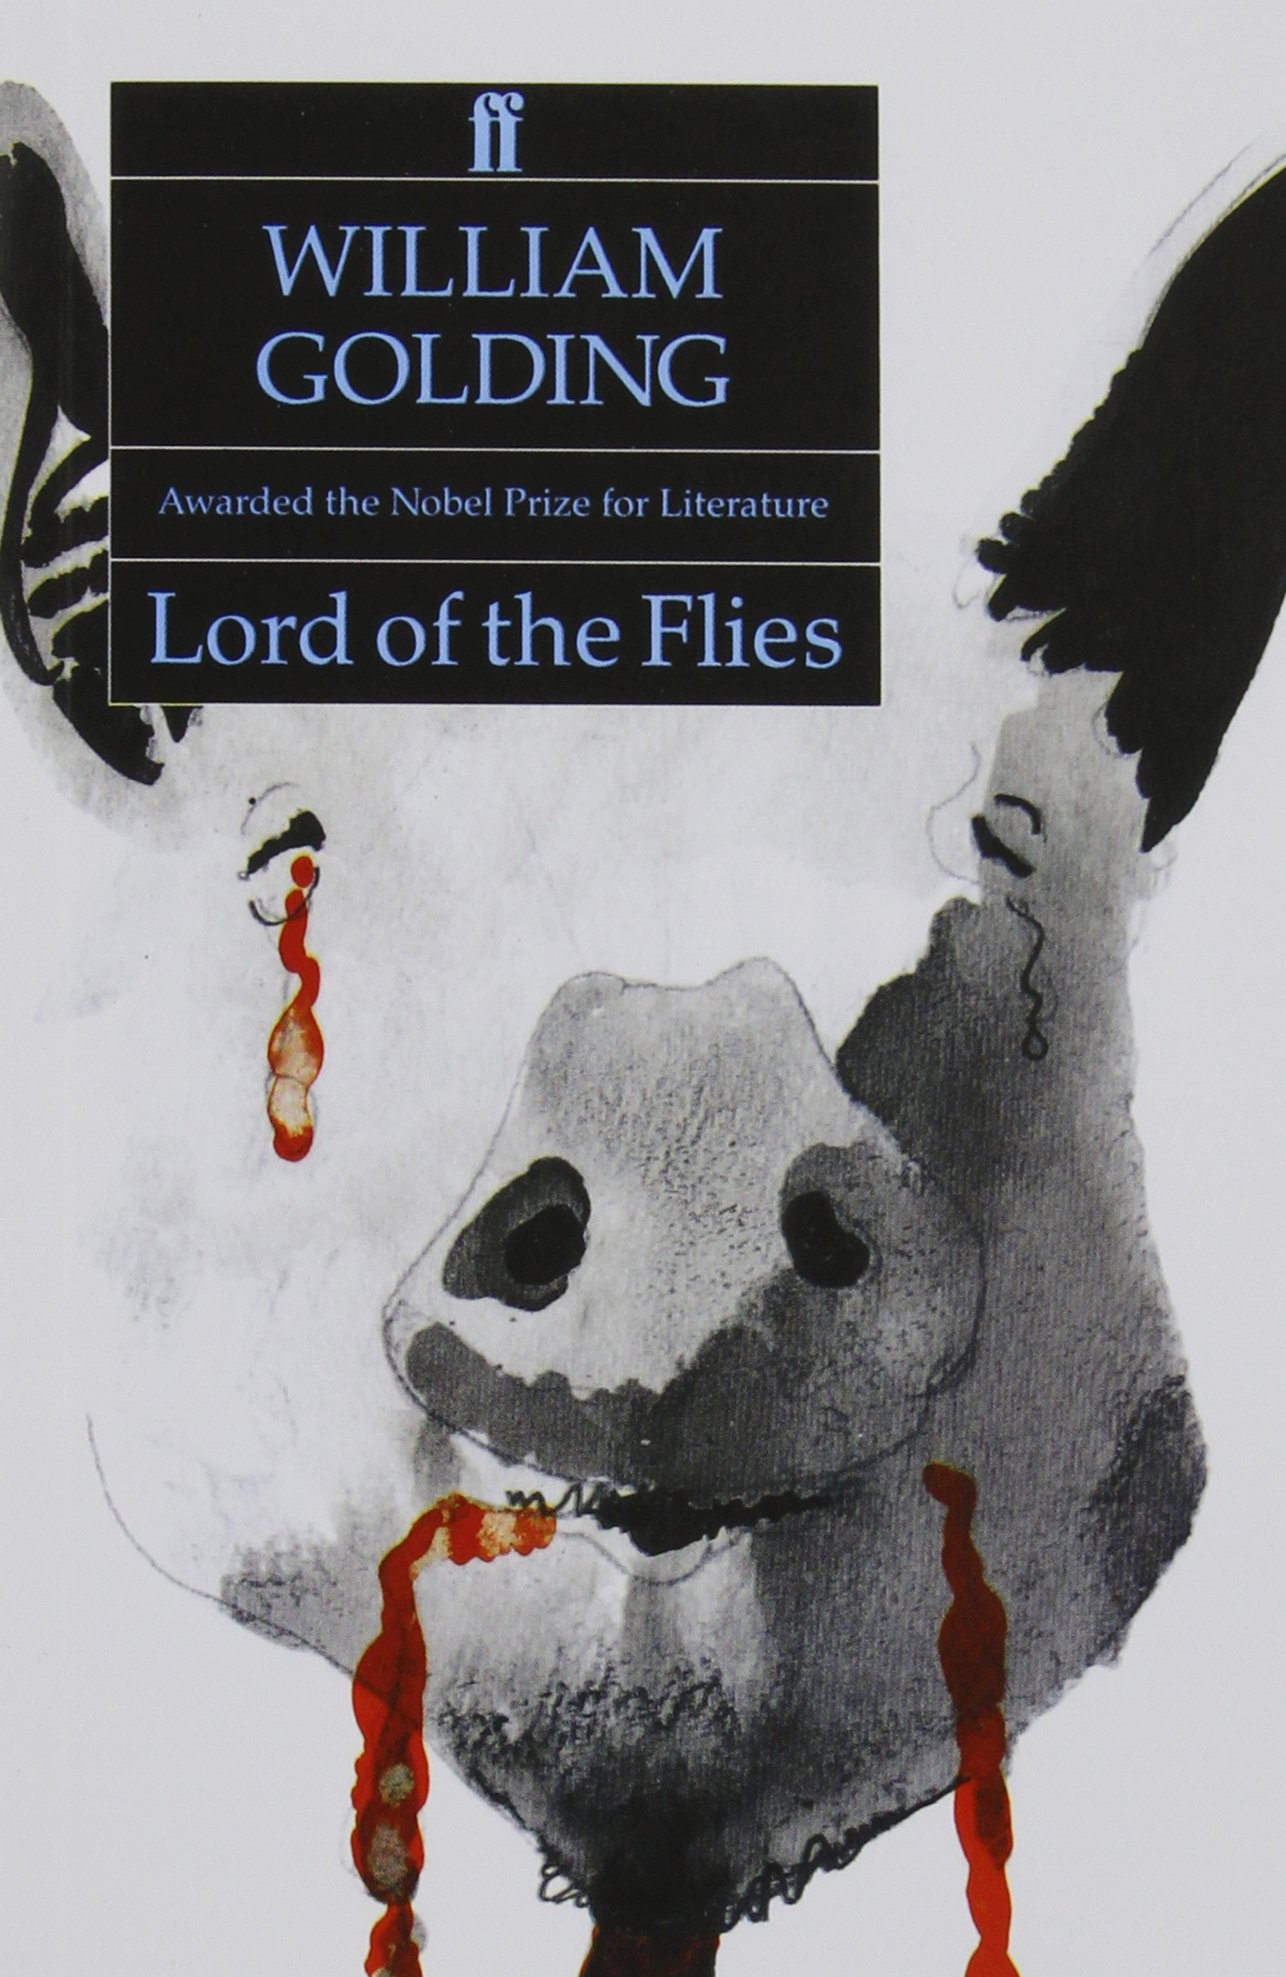 lord of the flies william golding 9780571084838 literature lord of the flies william golding 9780571084838 literature